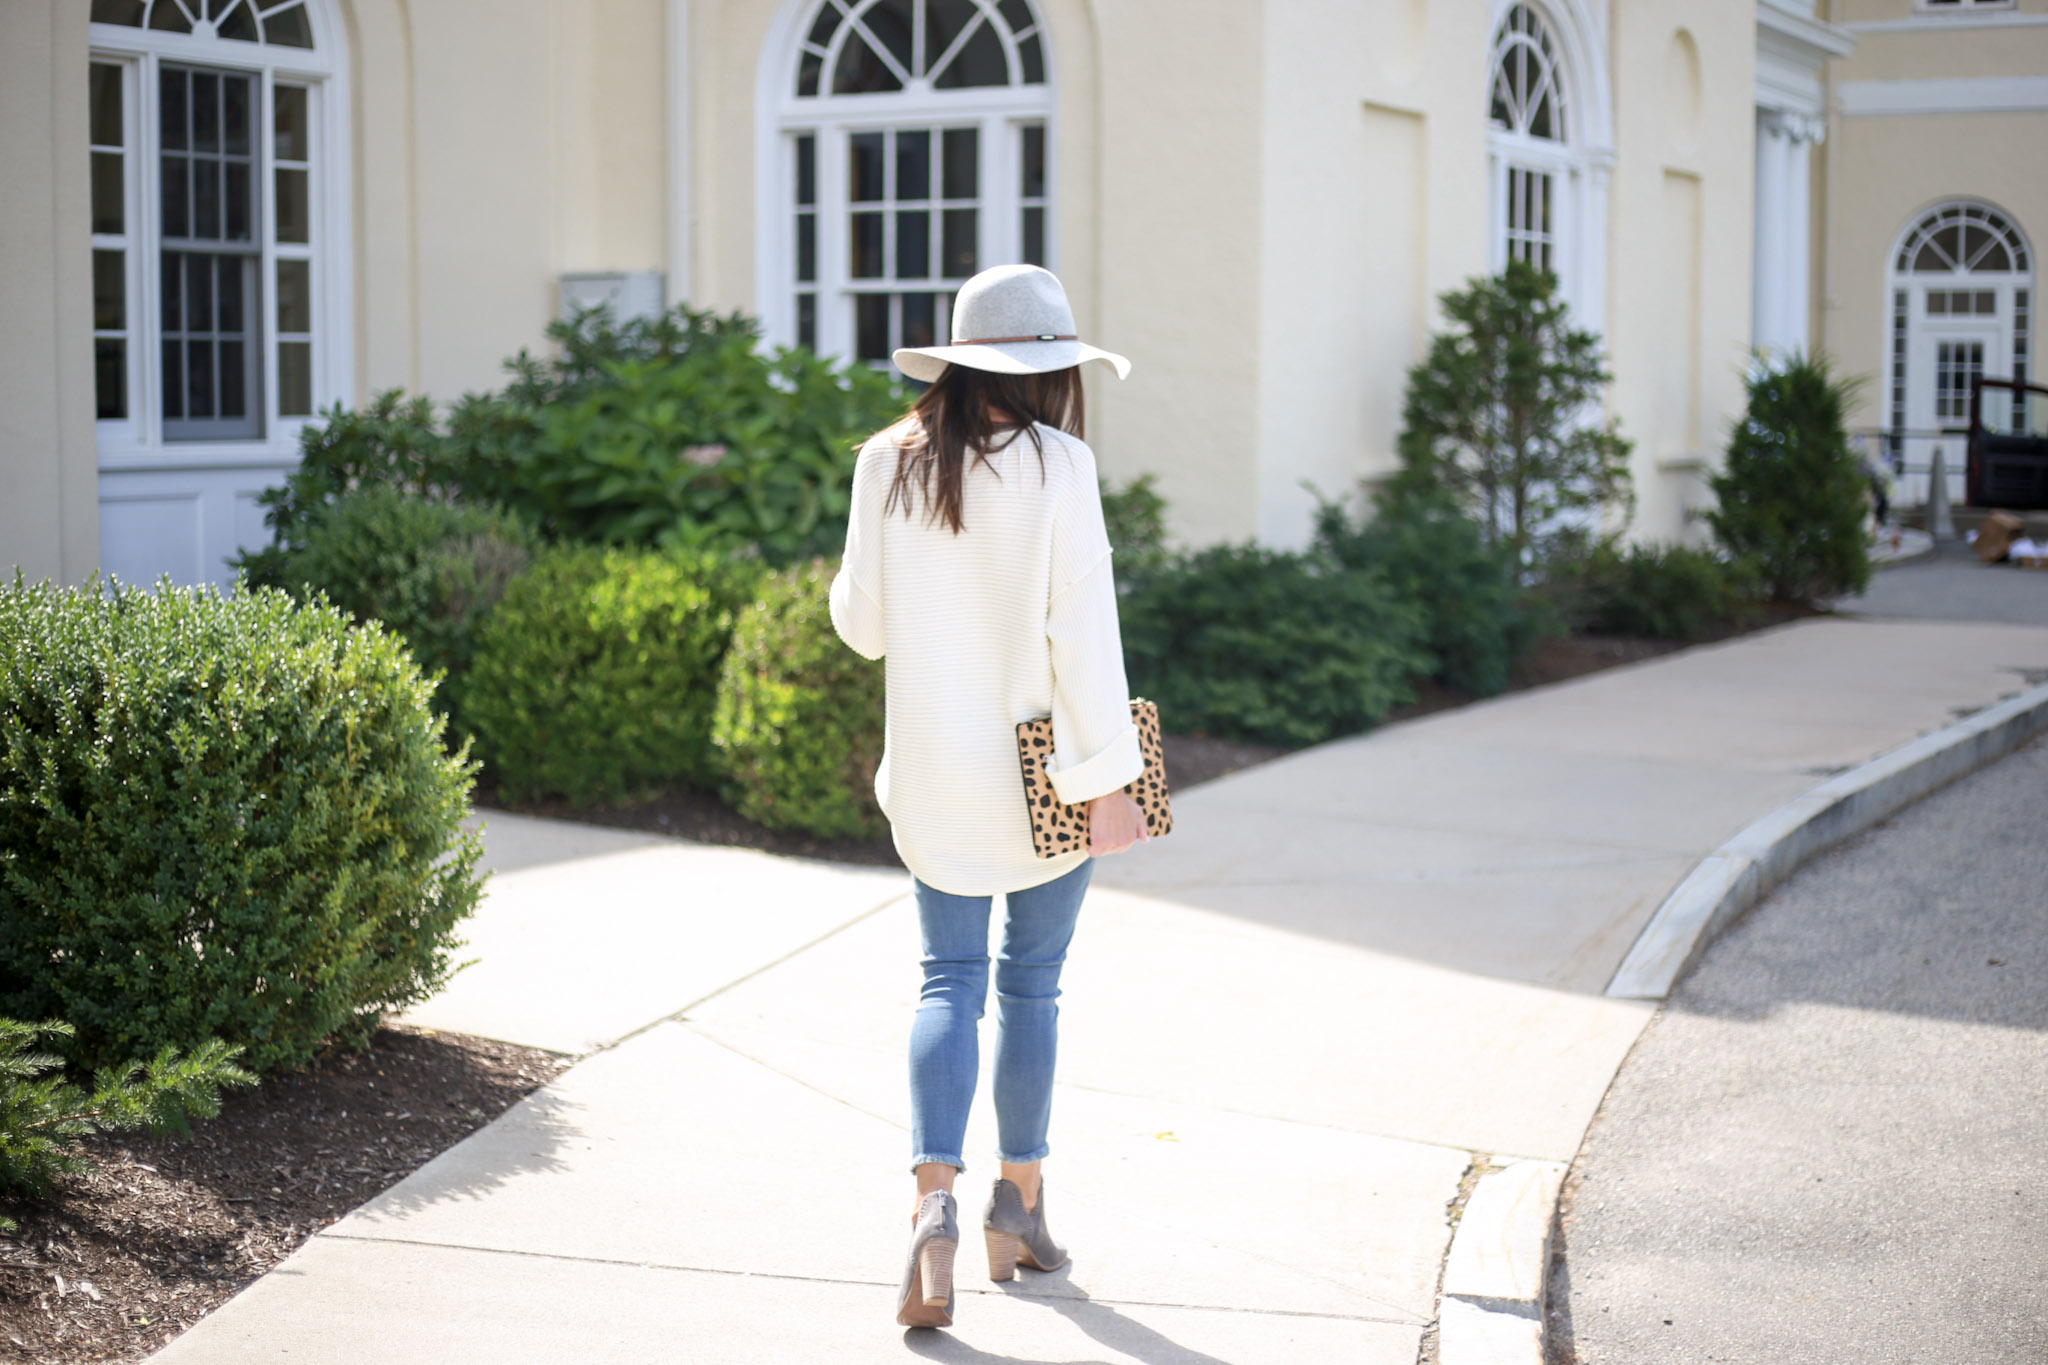 Building your capsule wardrobe; chunky knit sweaters - The Knit Sweater by Boston fashion blogger Living Life Pretty